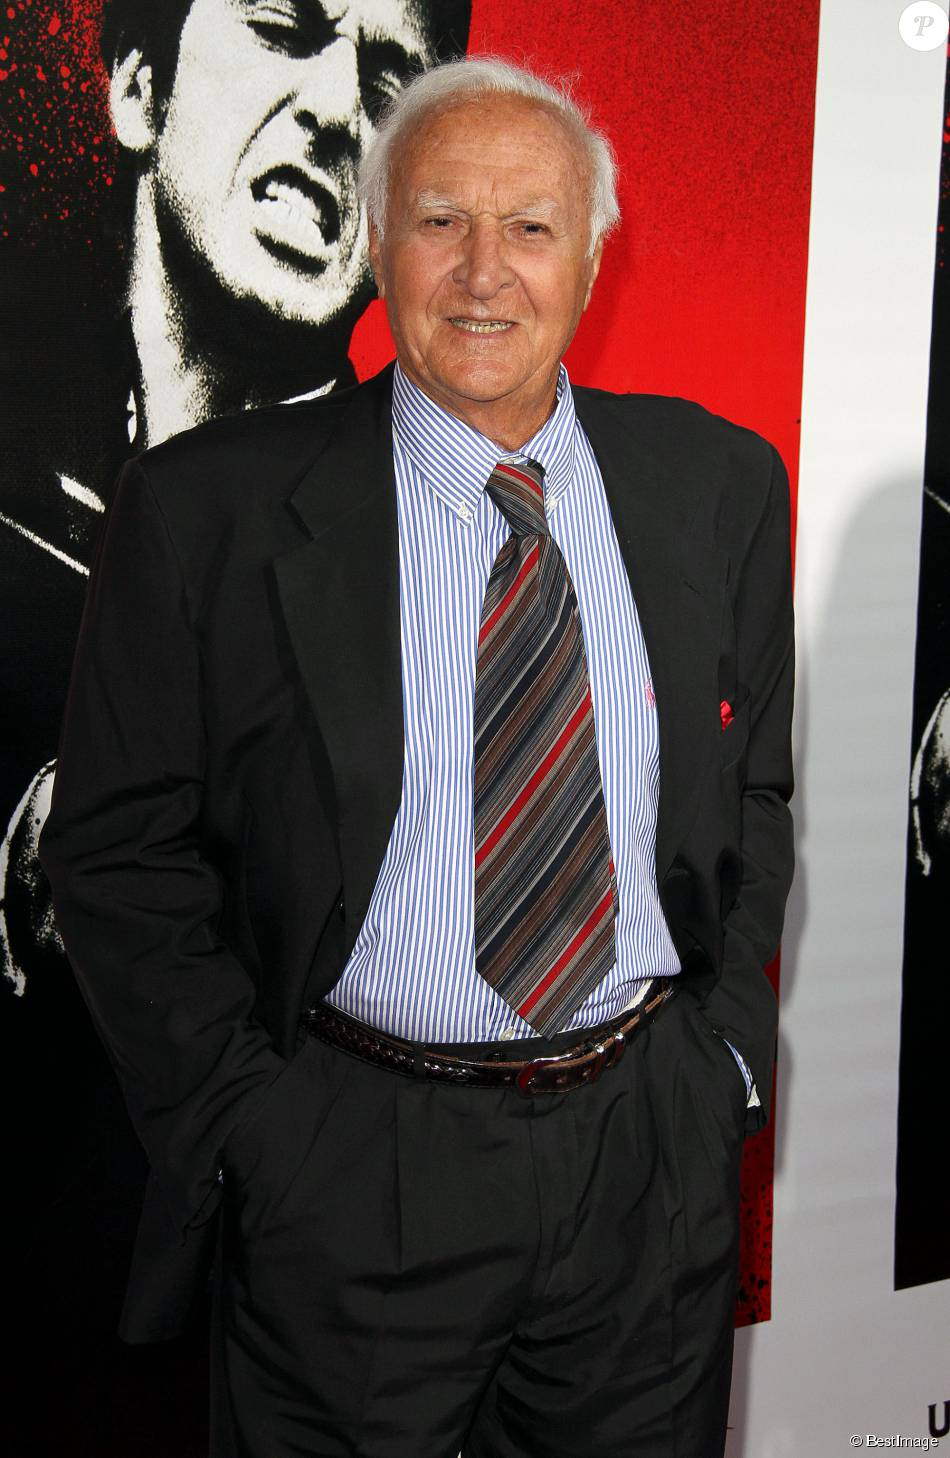 Robert Loggia au Belasco Theater de Los Angeles à l'occasion de la sortie du Blu-Ray du film Scarface, le 23 août 2011